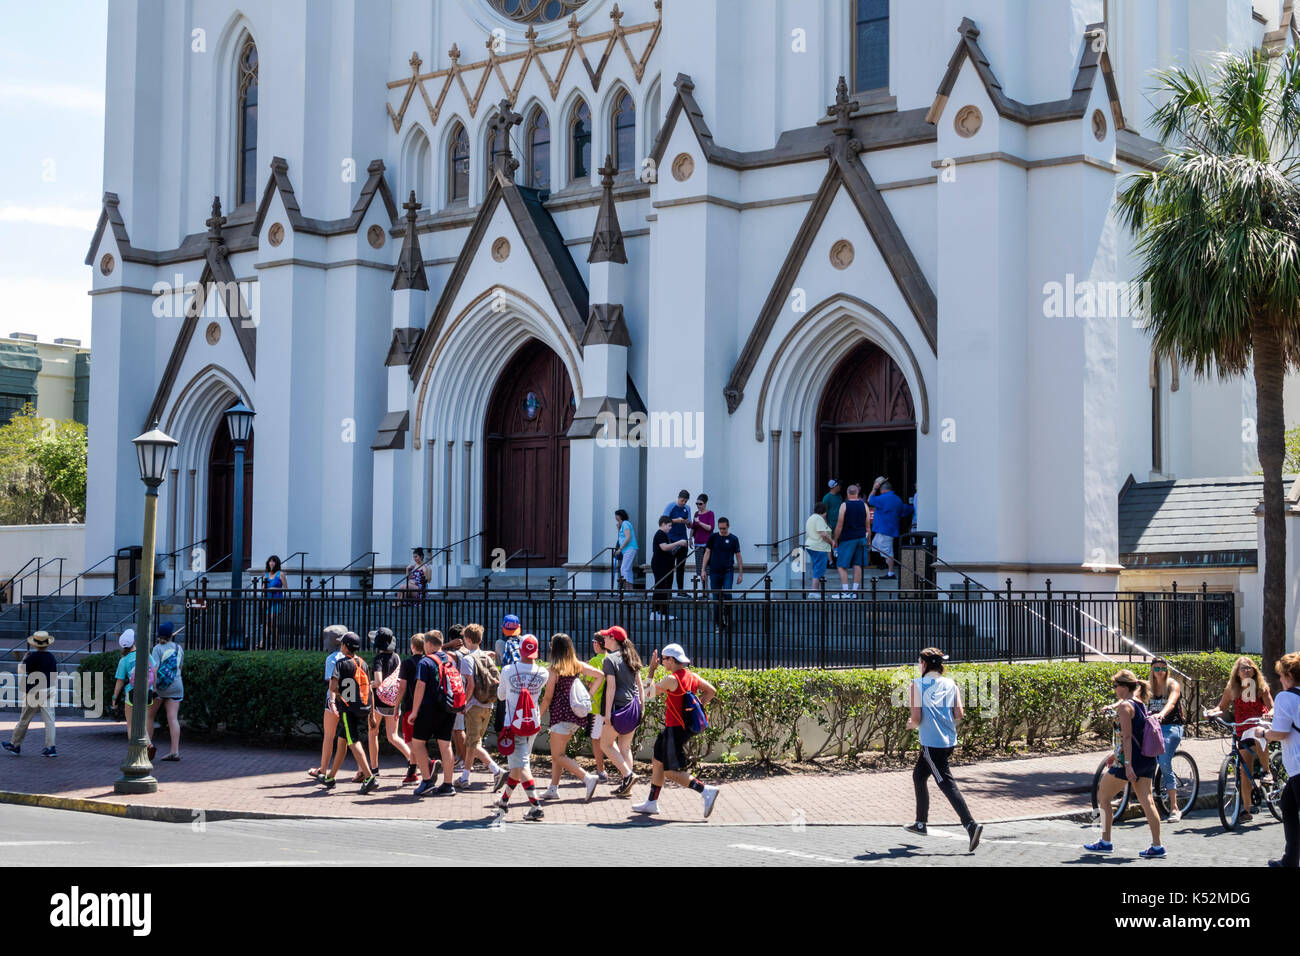 Savannah Georgia historic district Lafayette Square Cathedral of St. John the Baptist - Stock Image